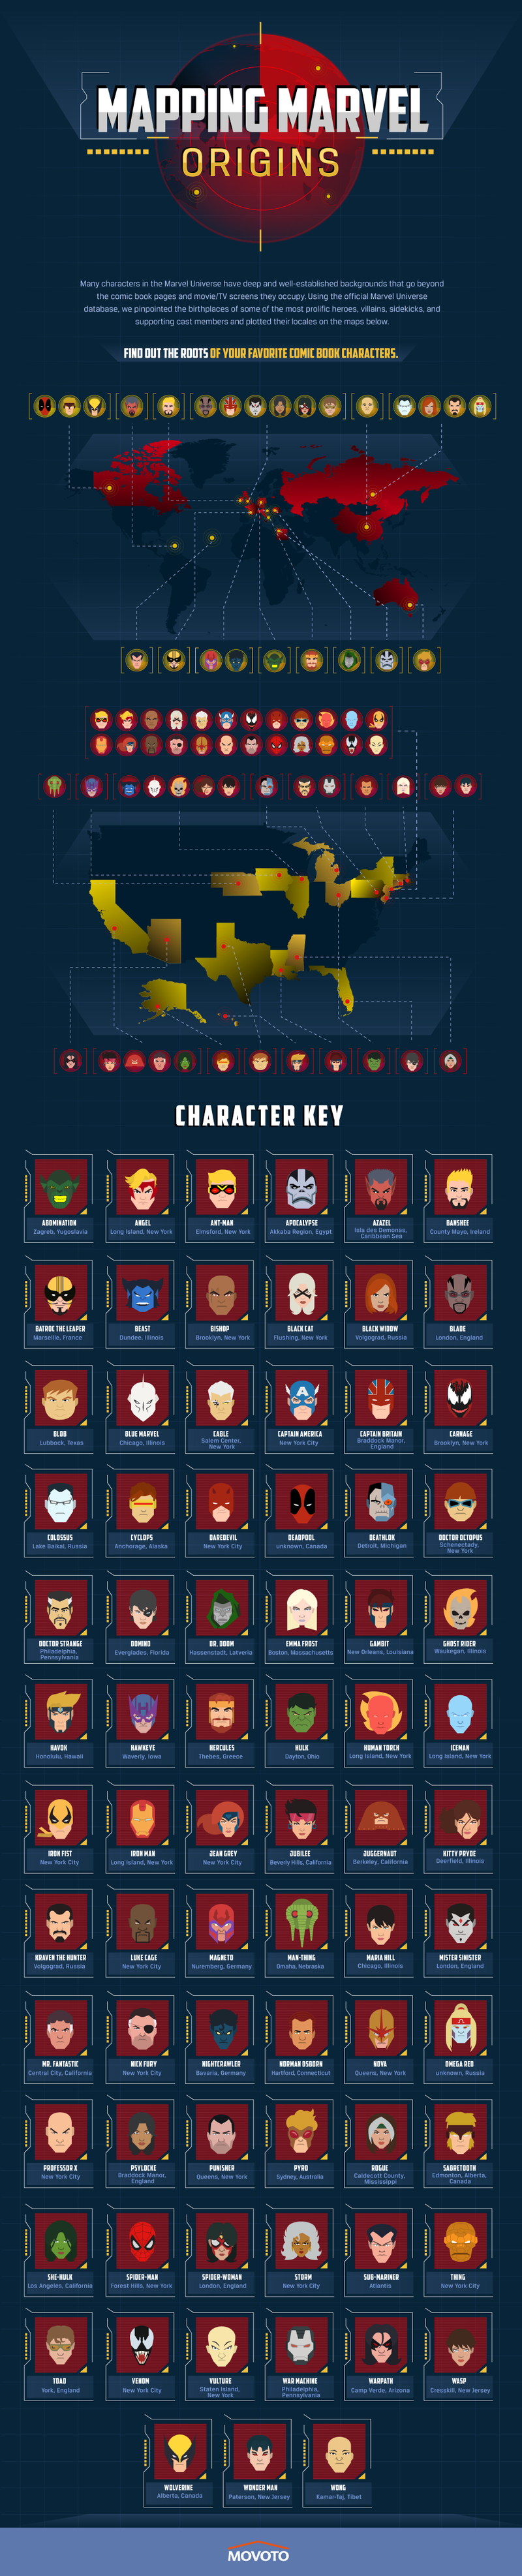 This map shows where the most famous Marvel characters are from